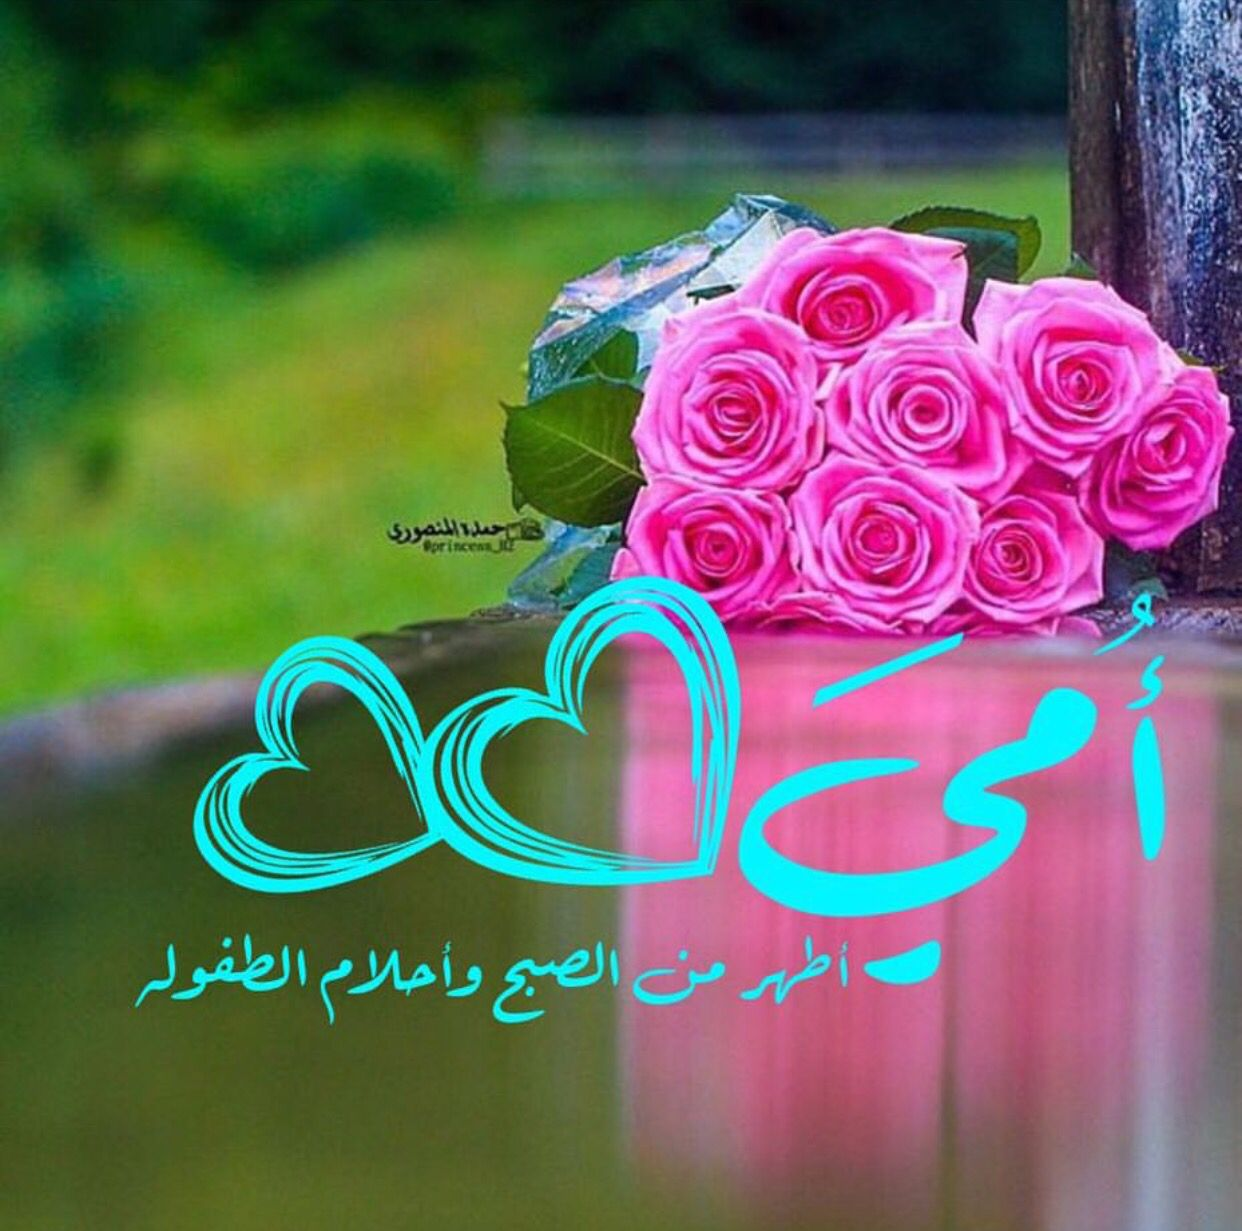 Pin By Daralzeen On رمزيات اسلاميه Flowers Rose Mom And Dad